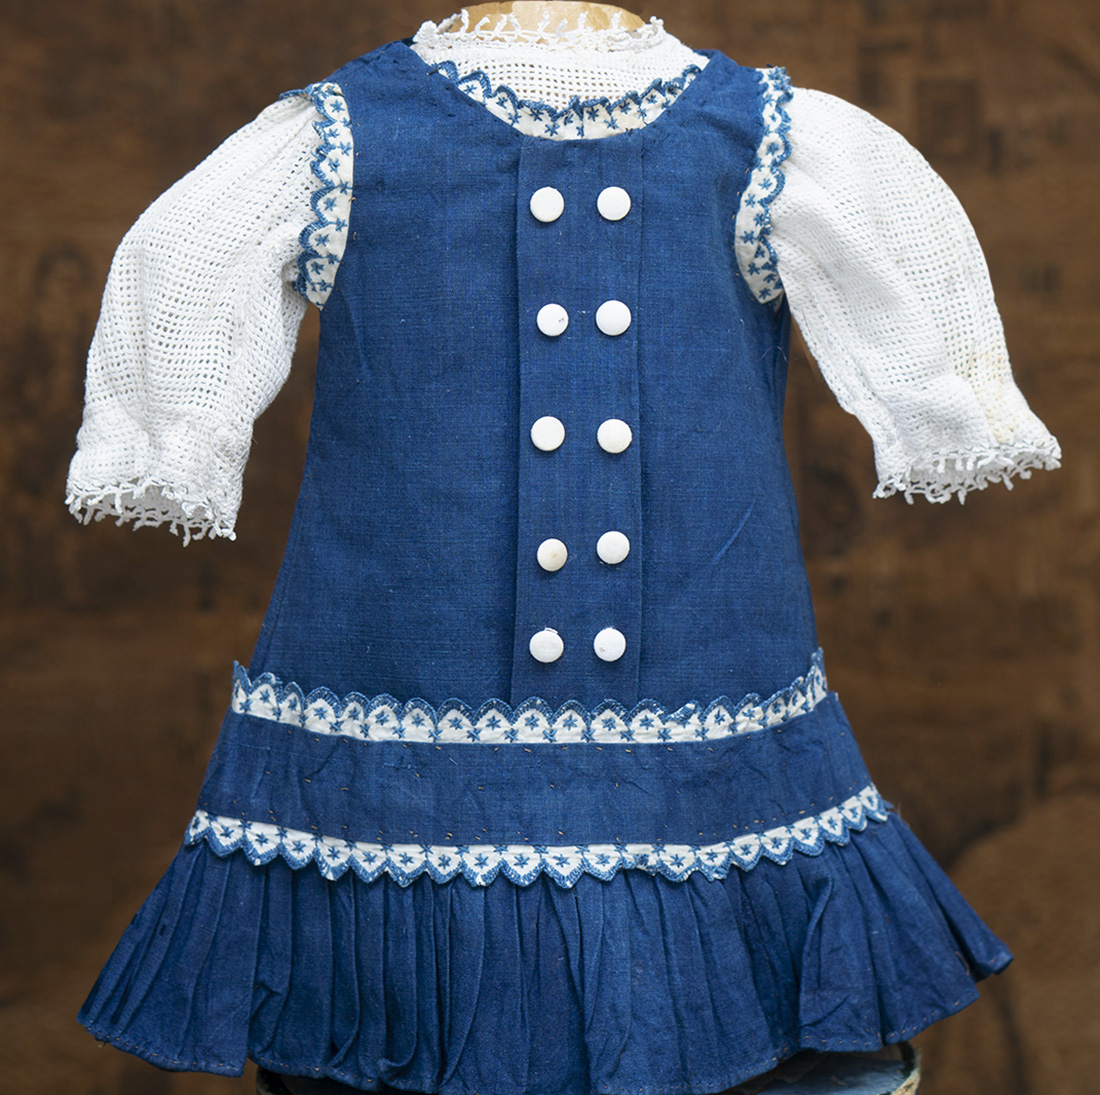 Antique Pinafore dress and blouse